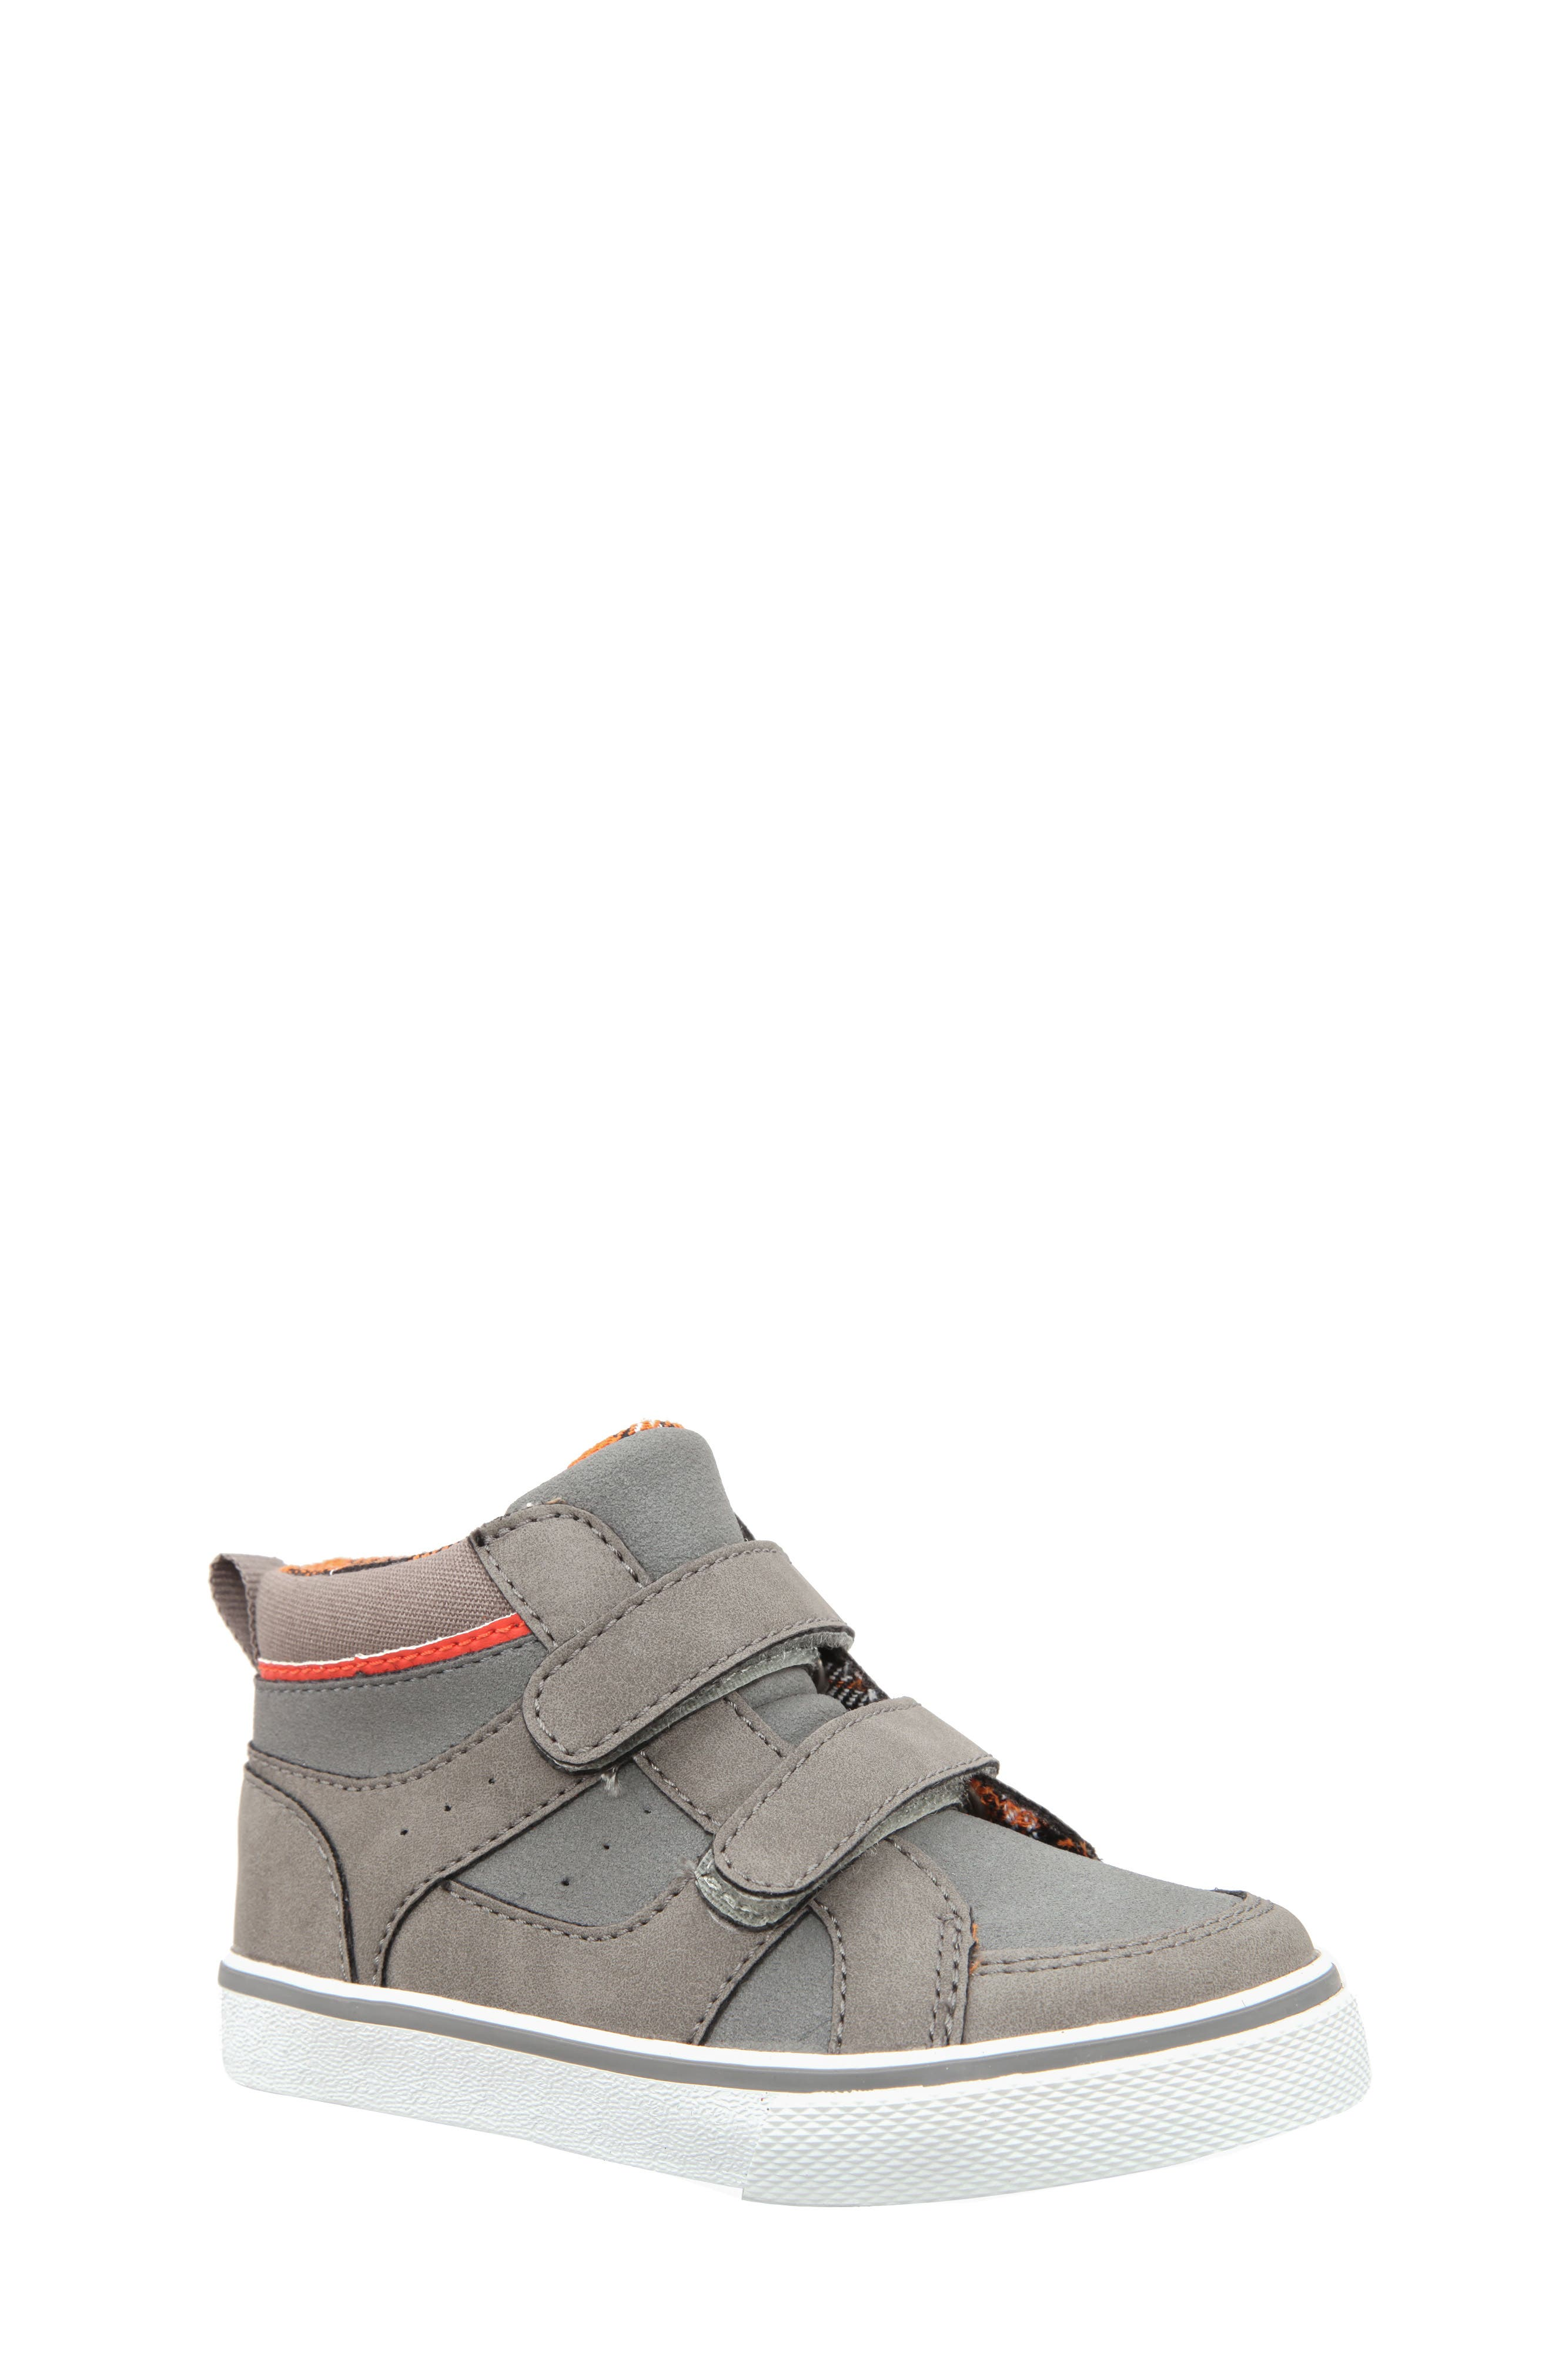 ELEMENTS BY NINA Roy Mid Top Sneaker